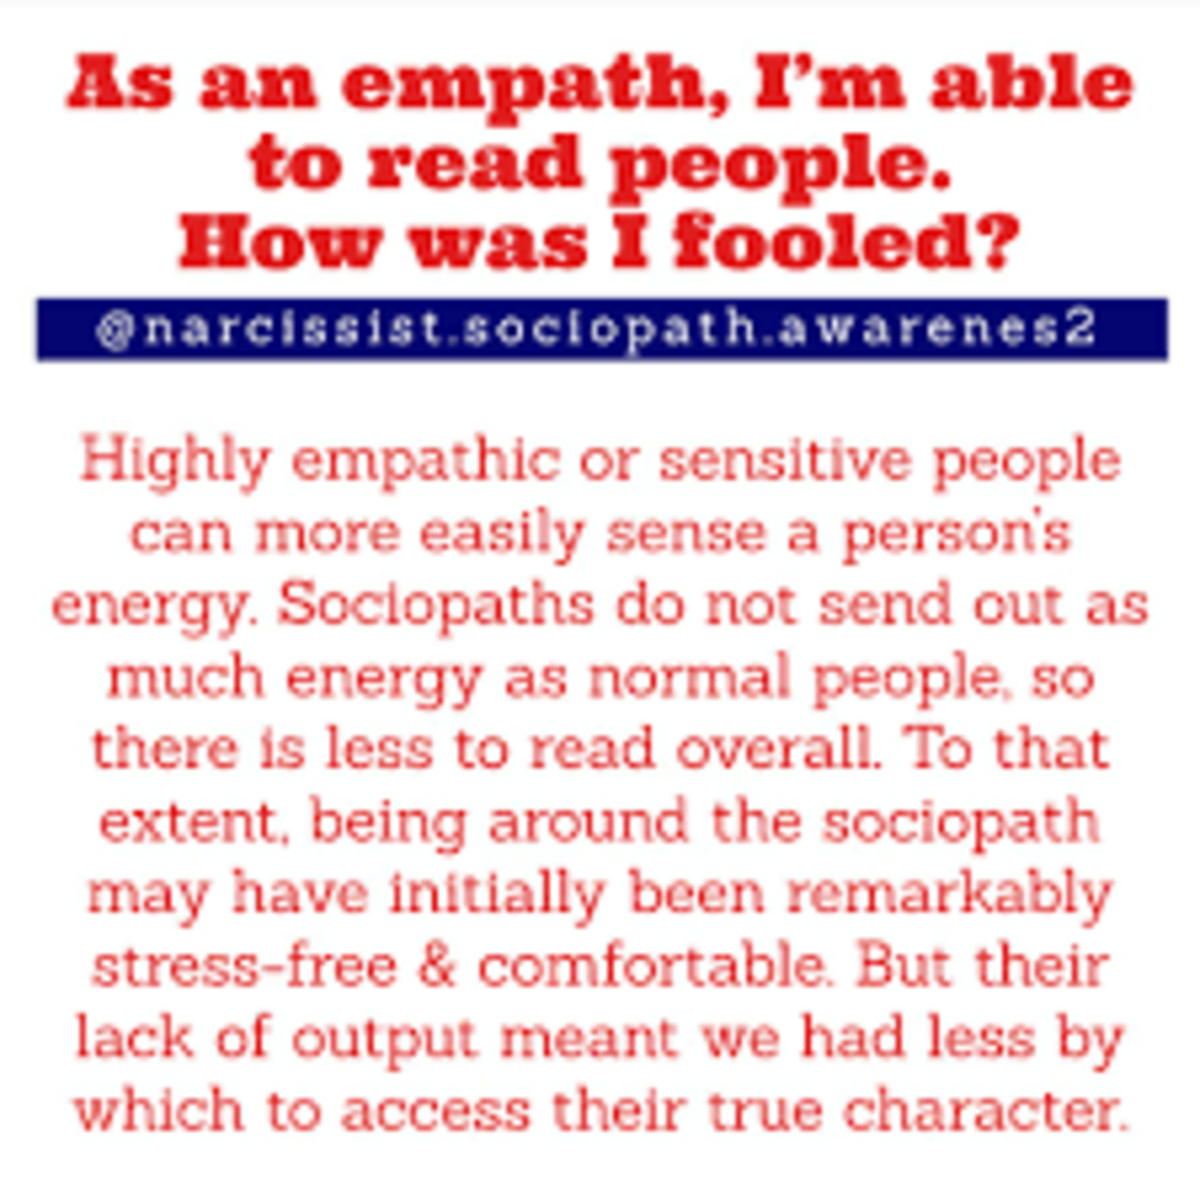 Sociopathic Tendencies - The Sociopath as a Pathological Liar | HubPages